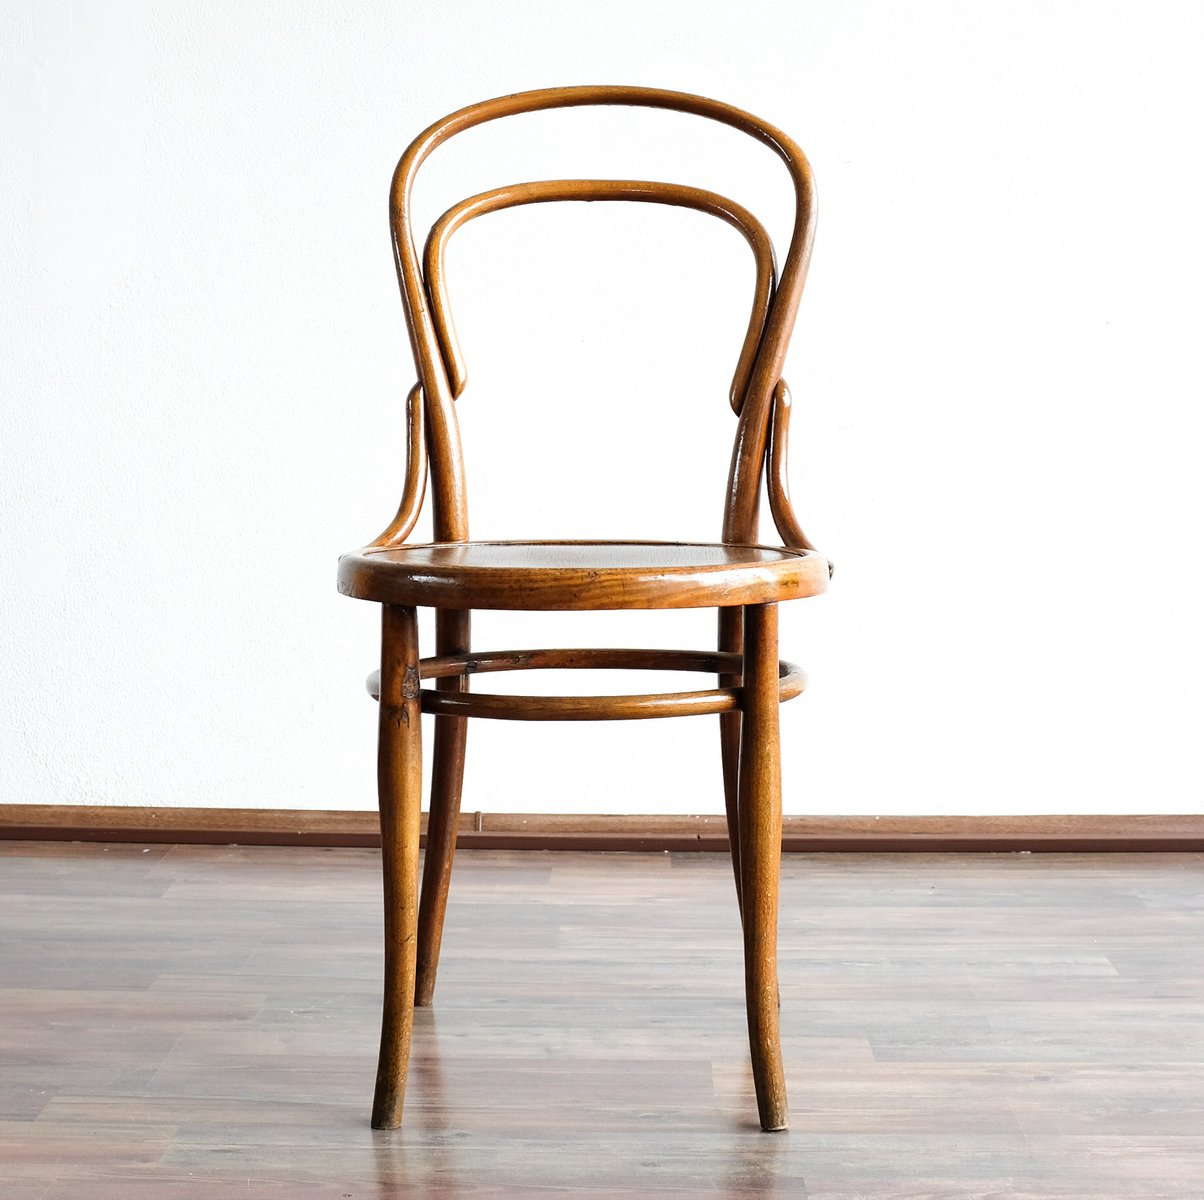 No 14 Chair from Thonet 1890s for sale at Pamono